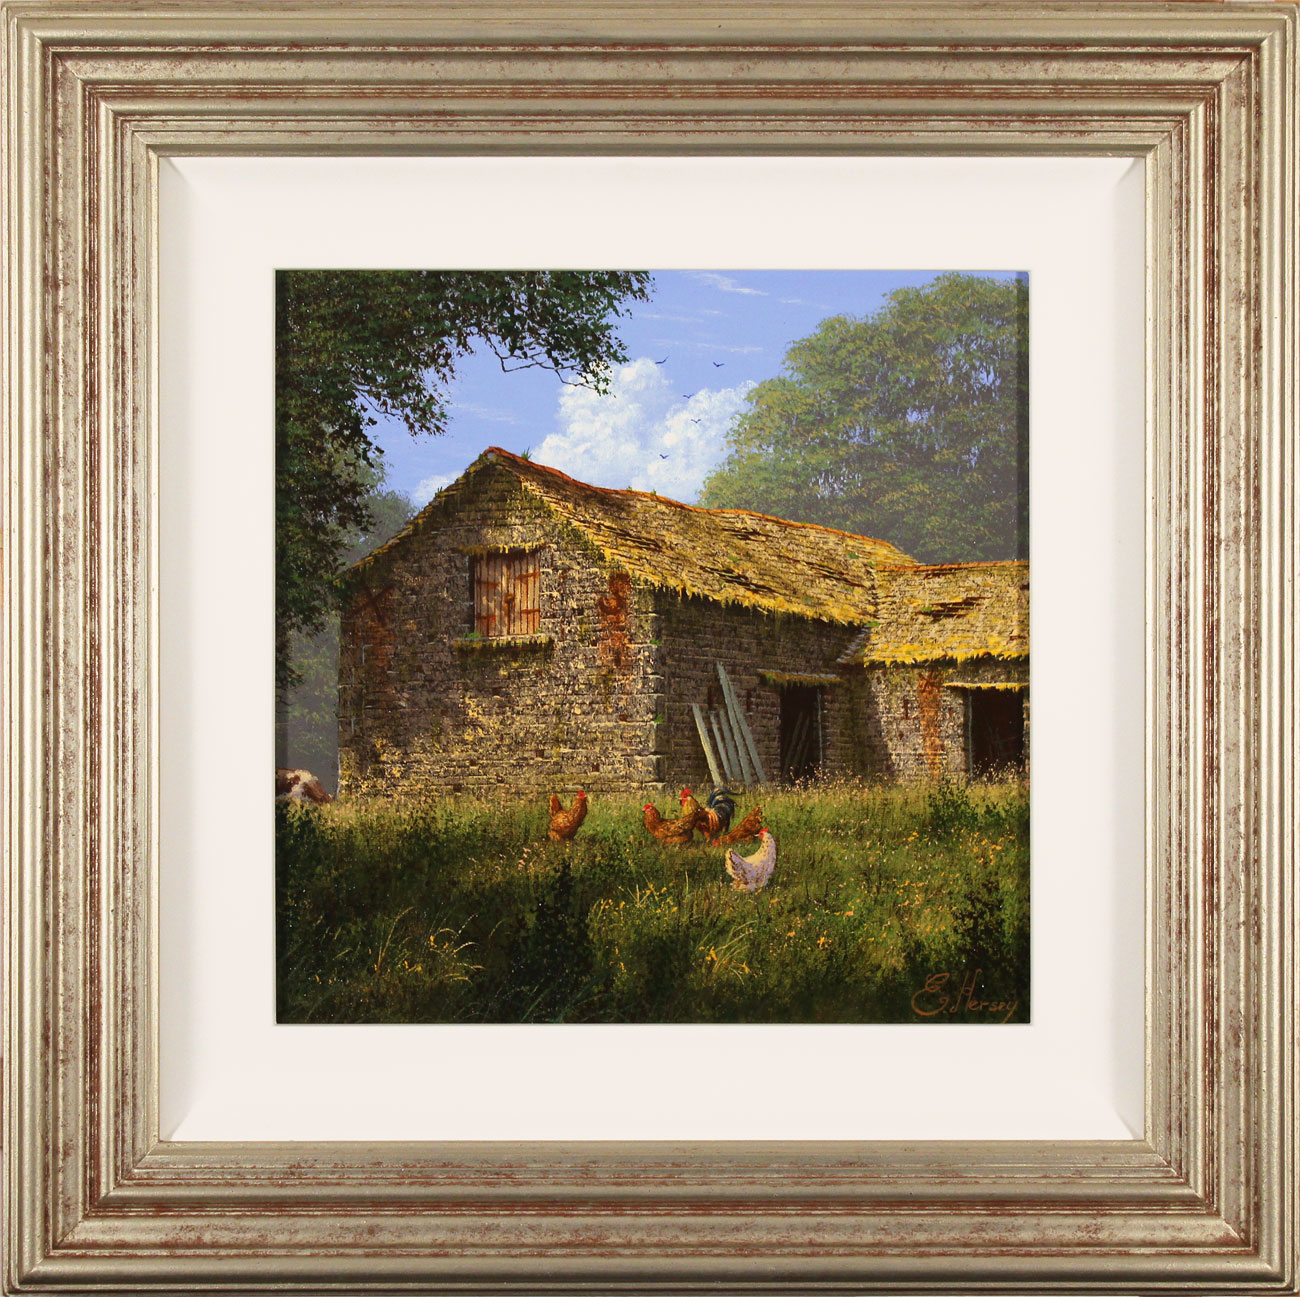 Edward Hersey, Original oil painting on canvas, The Summer Barn. Click to enlarge